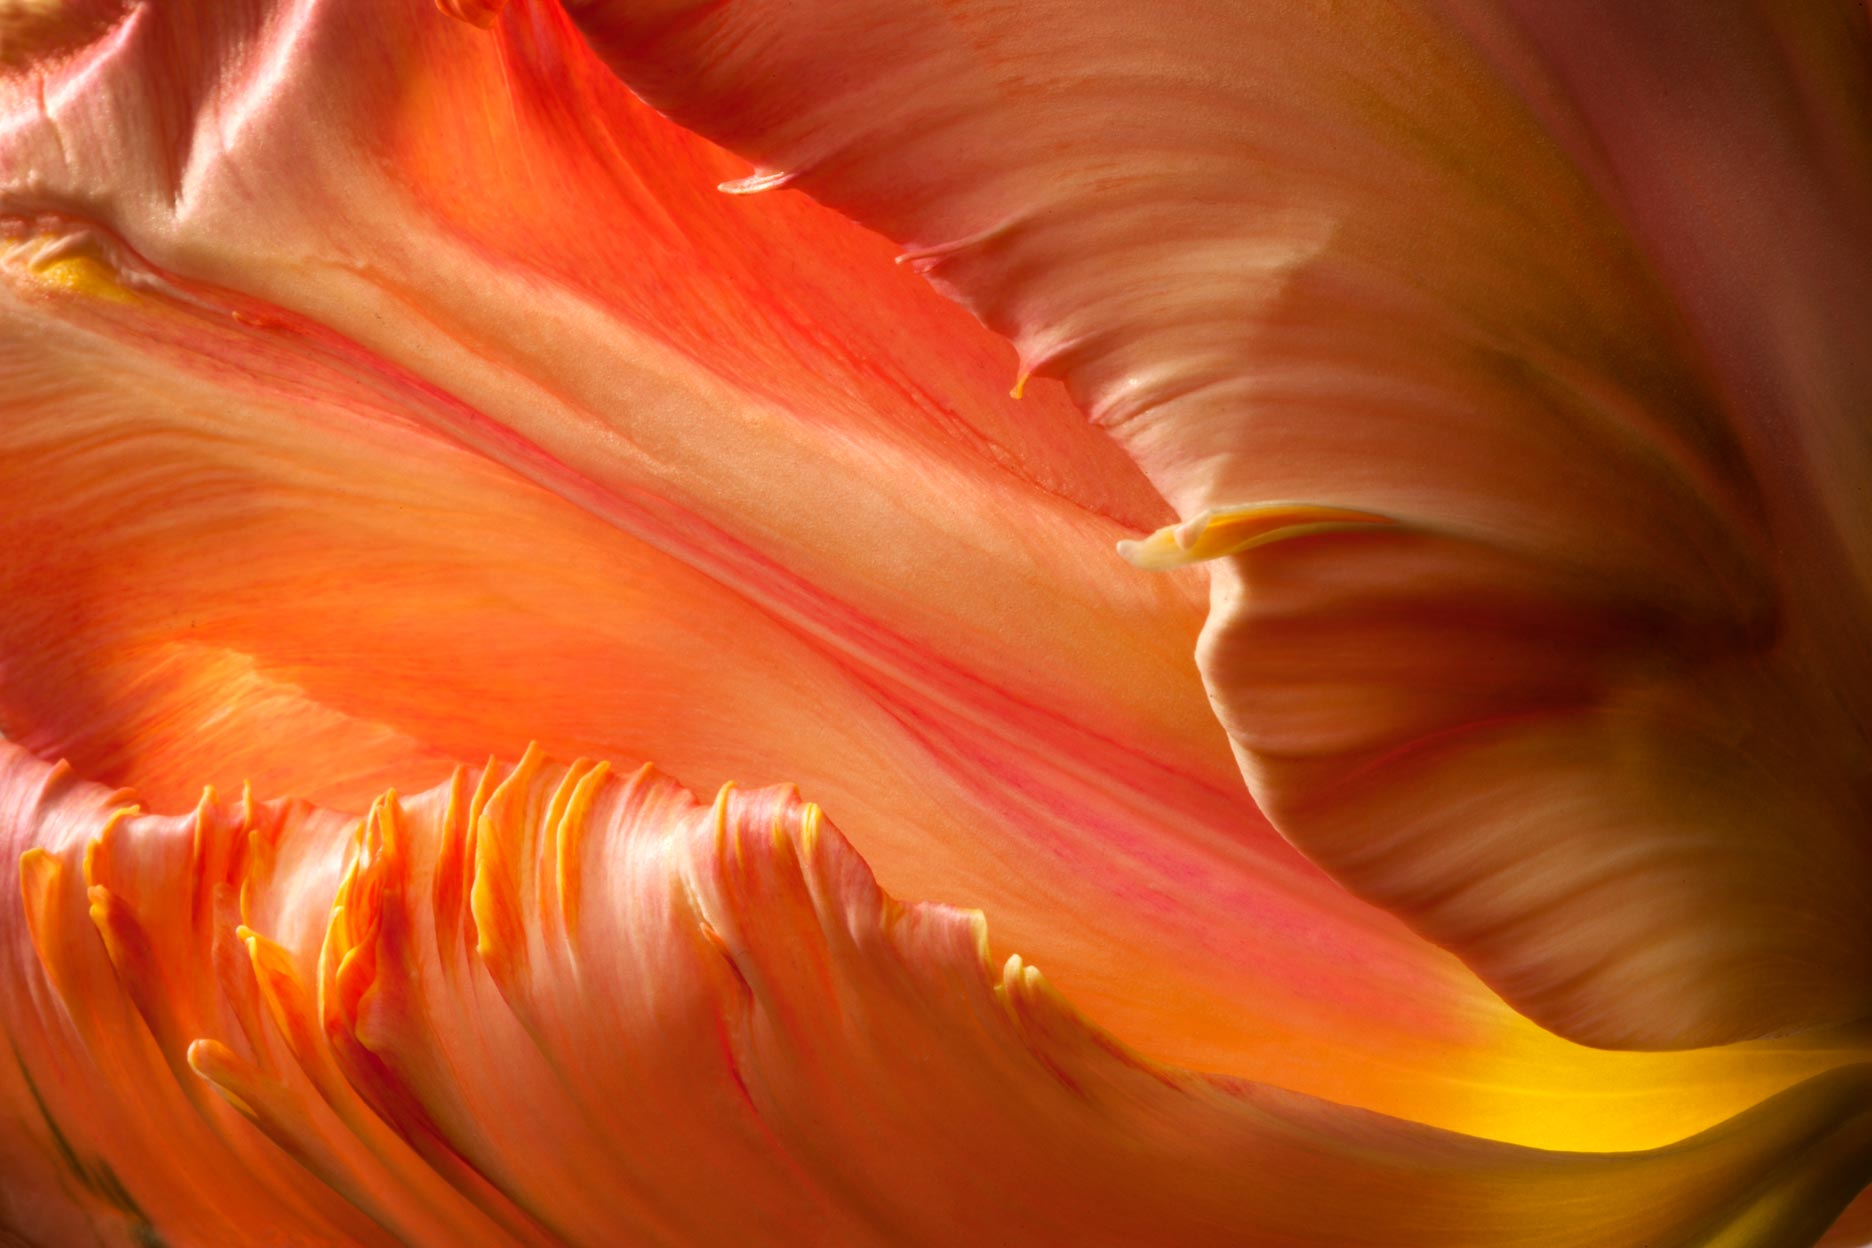 Detail of Tulip